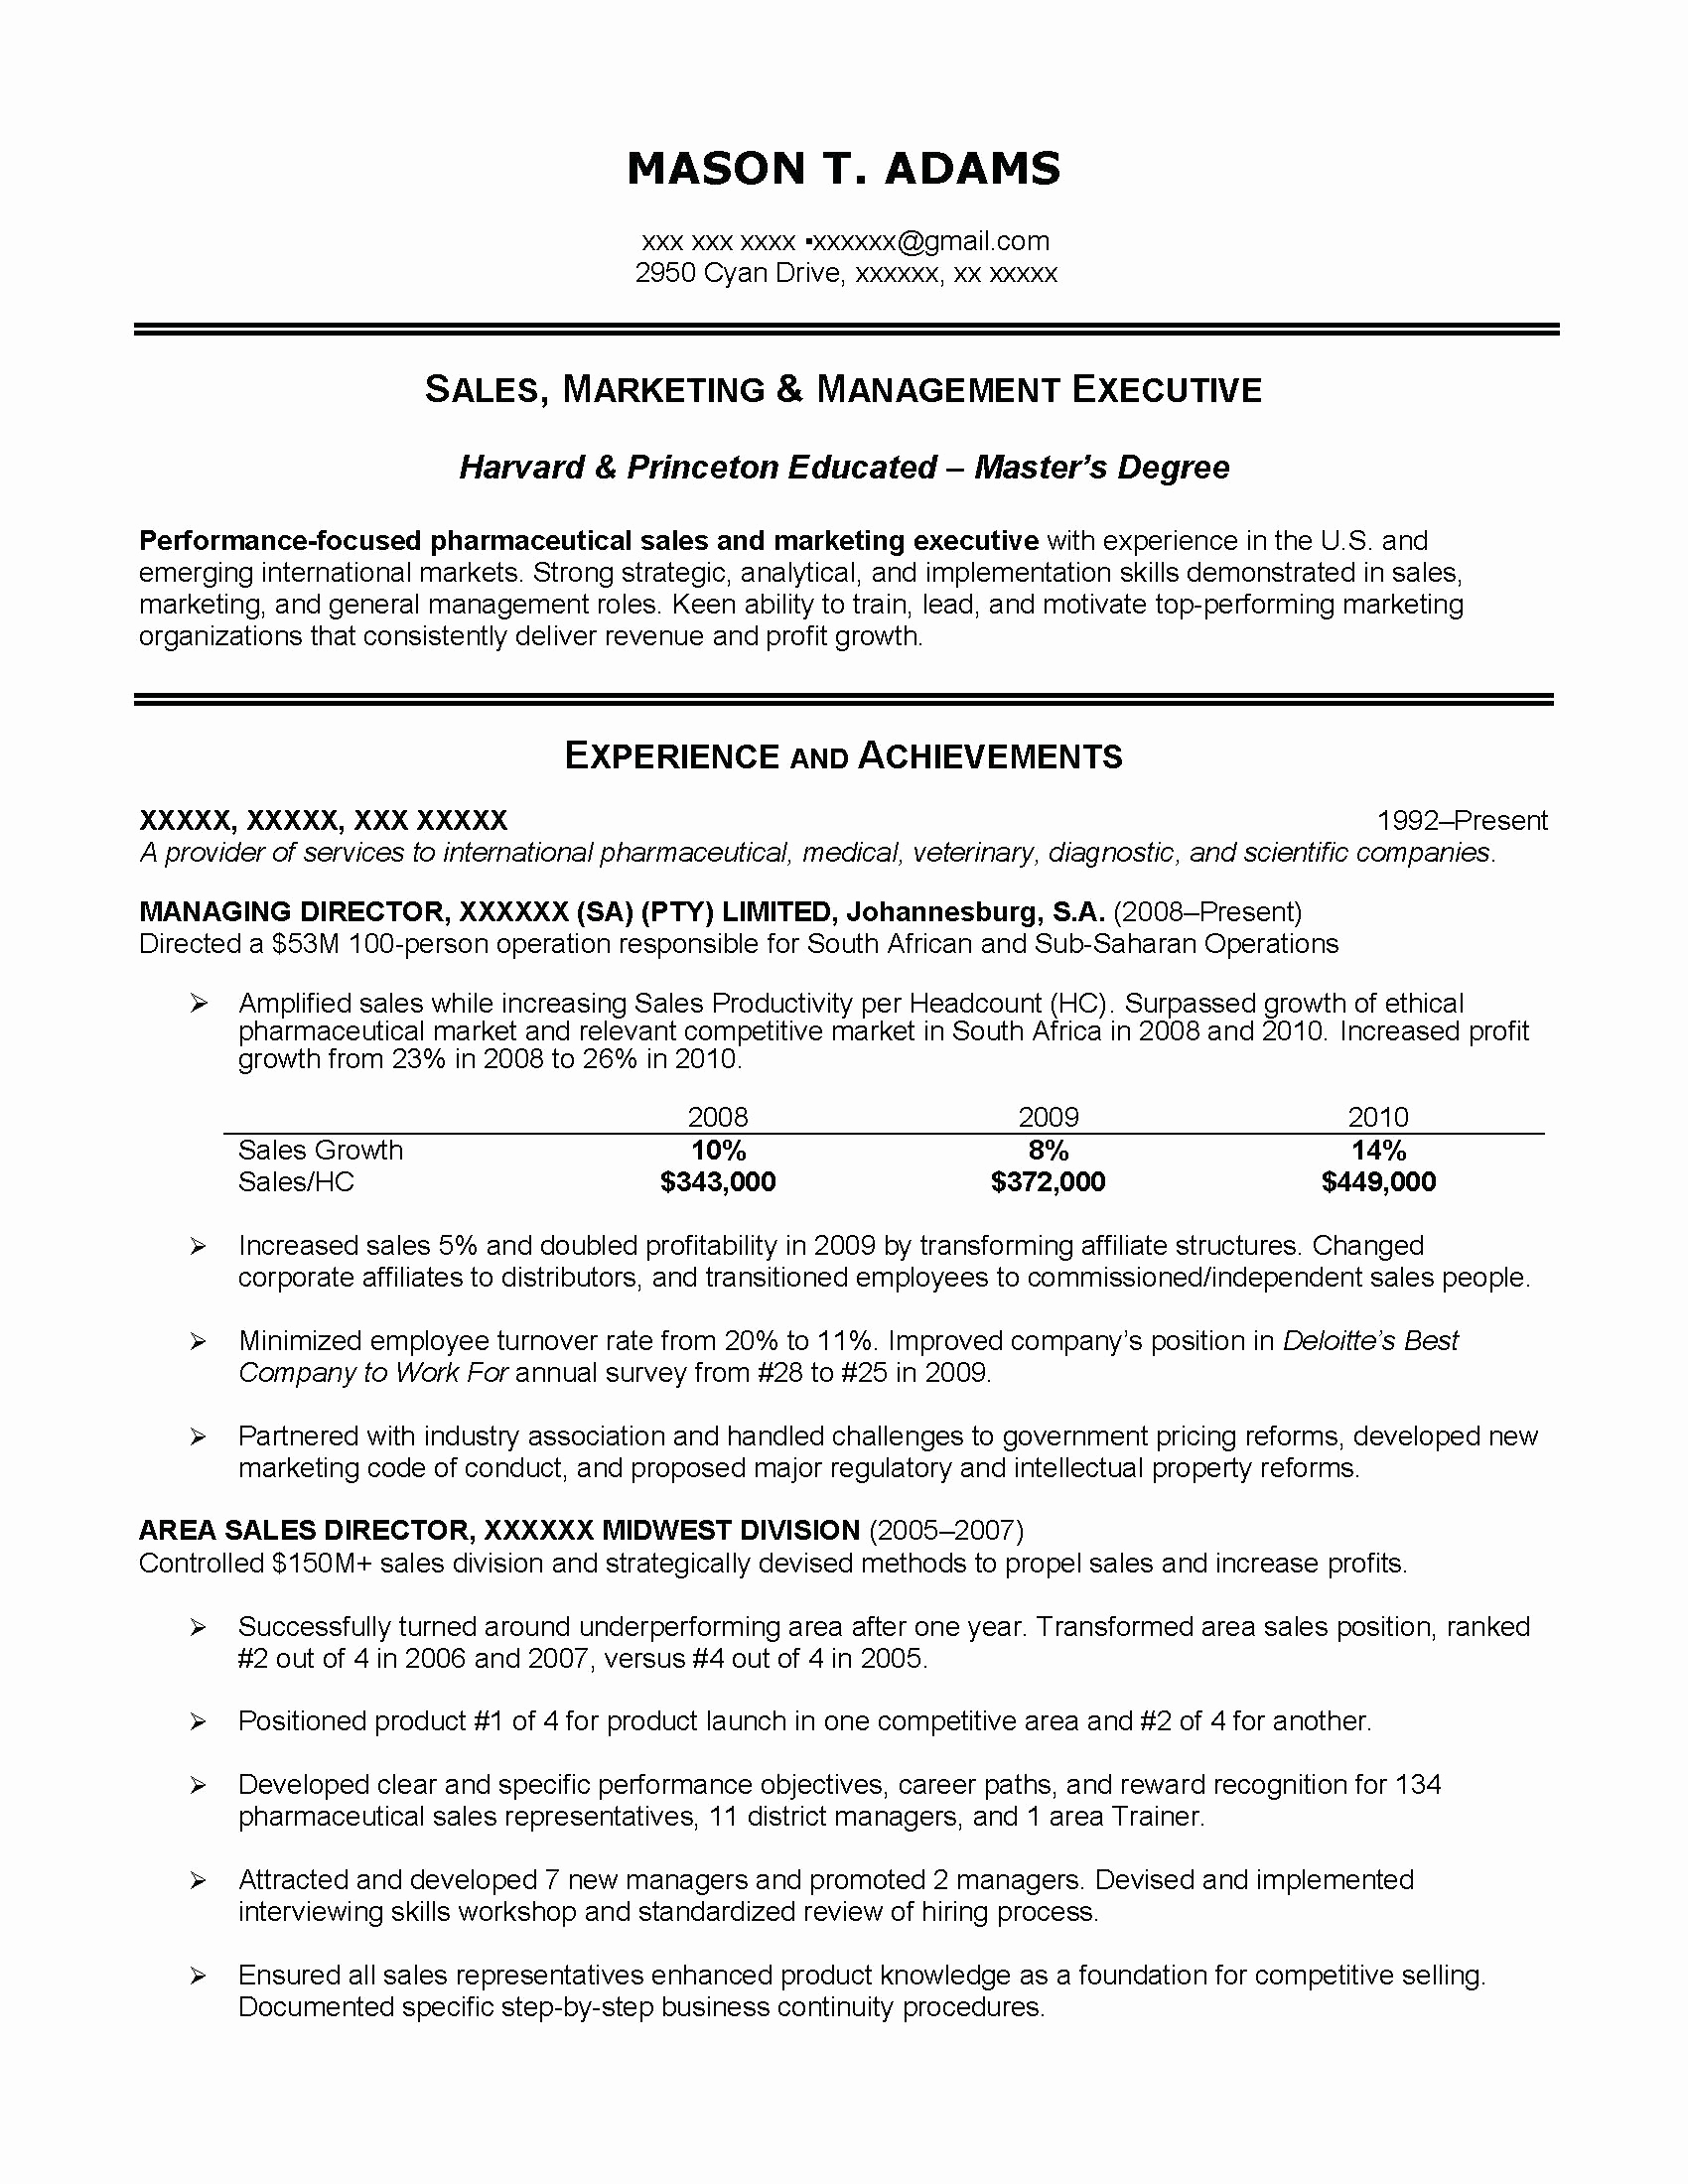 Skills Based Resume Template Free Awesome Sample Skills Based Resume Petency Elegant format Fresh